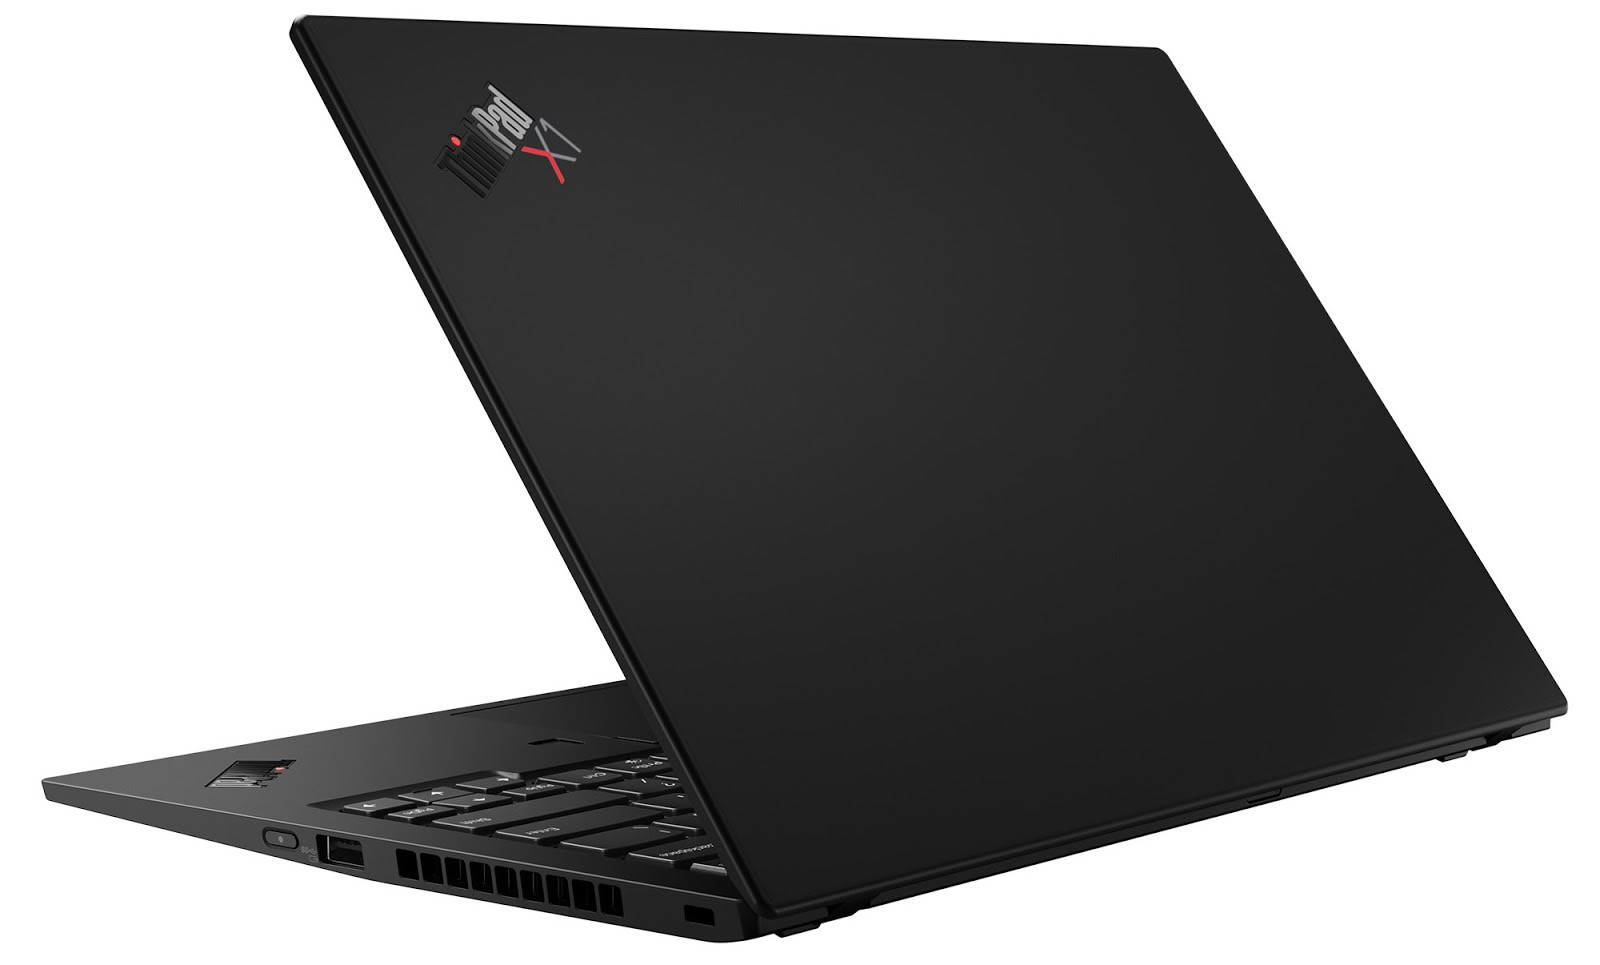 Фото 3. Ноутбук Lenovo ThinkPad X1 Carbon Gen 8 (20U9004RRT)